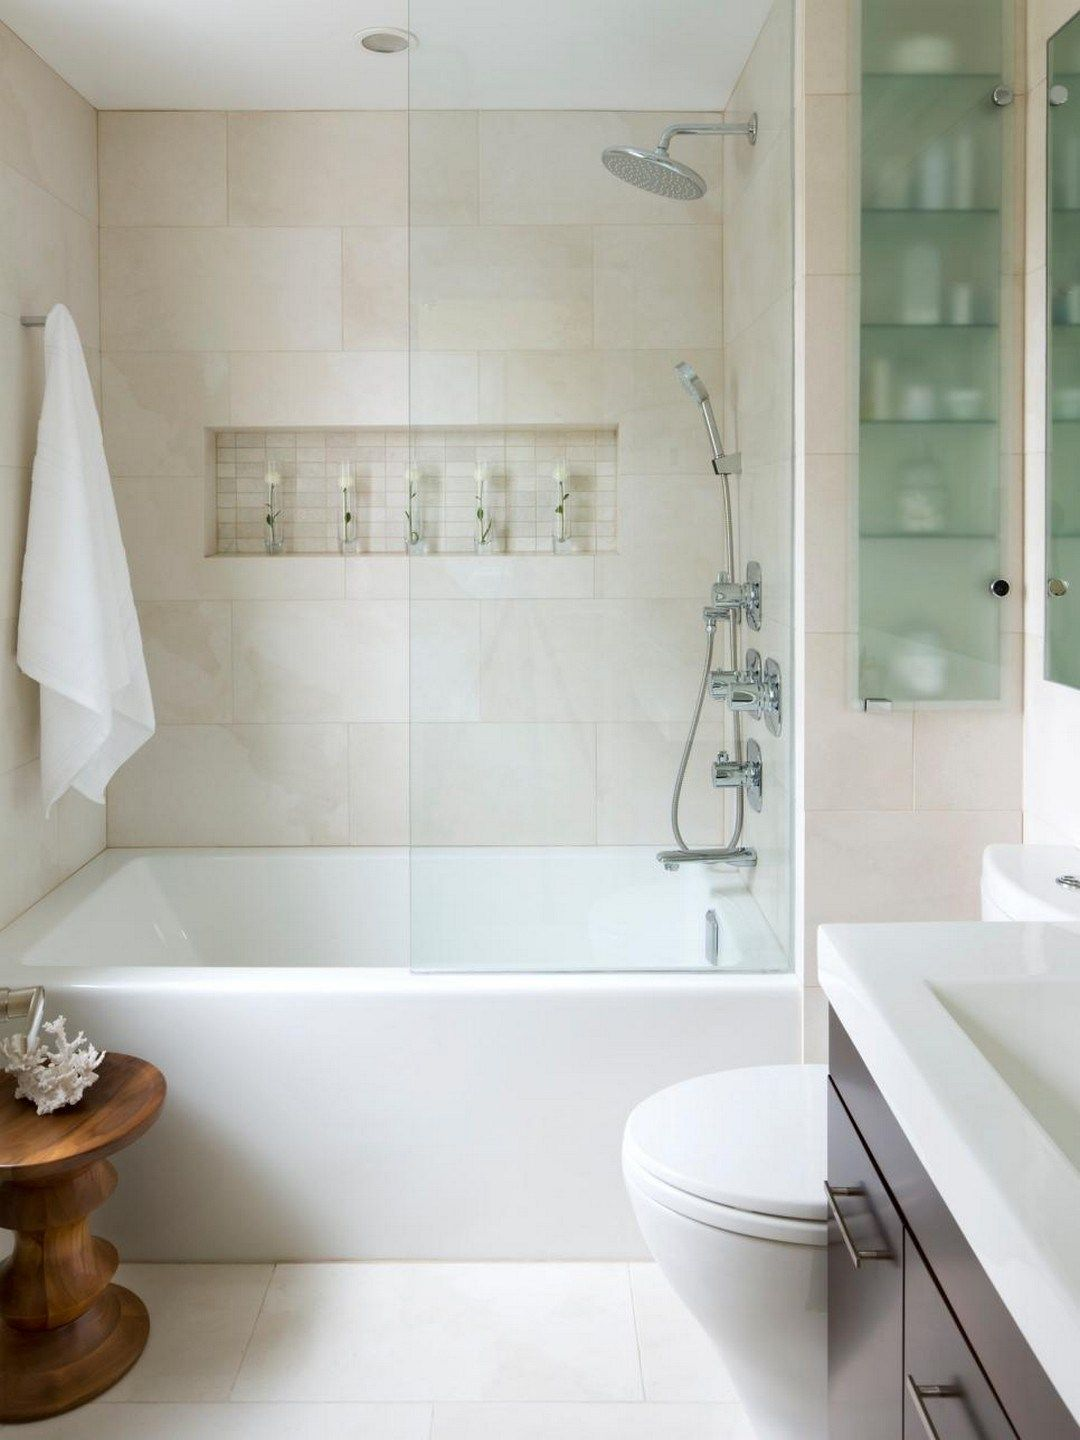 Shape Of Tub Mirrored In The Large Tiles, Half/glass Splash Guard